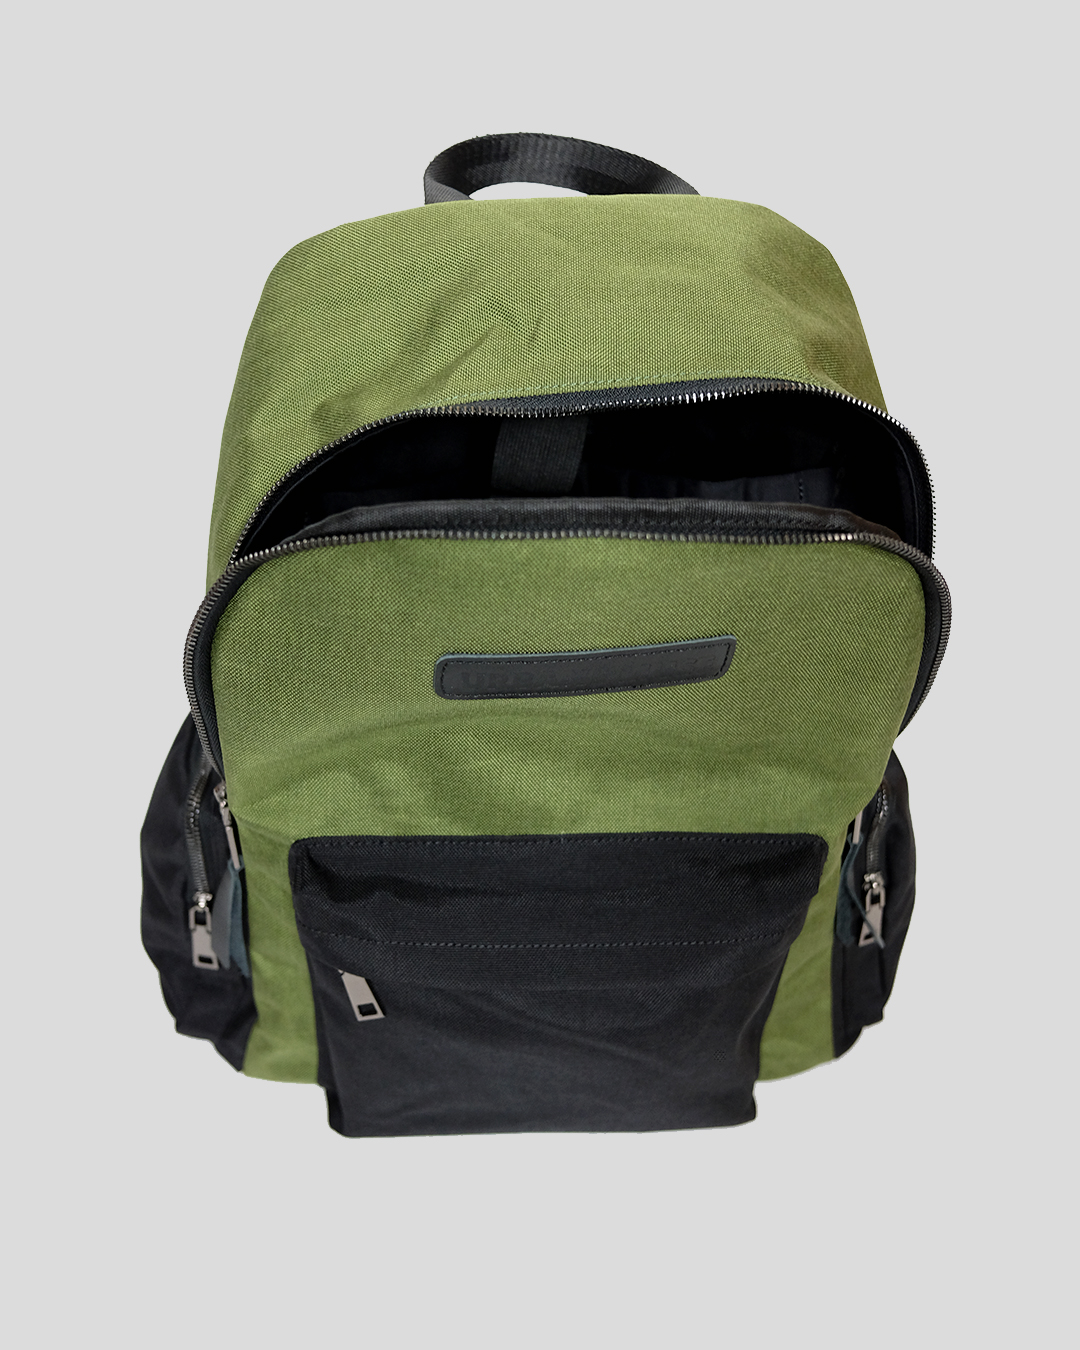 photo-5-GREEN-CORDURA-BACKPACK-URBANE-MUSE-CHRIS-SMITH